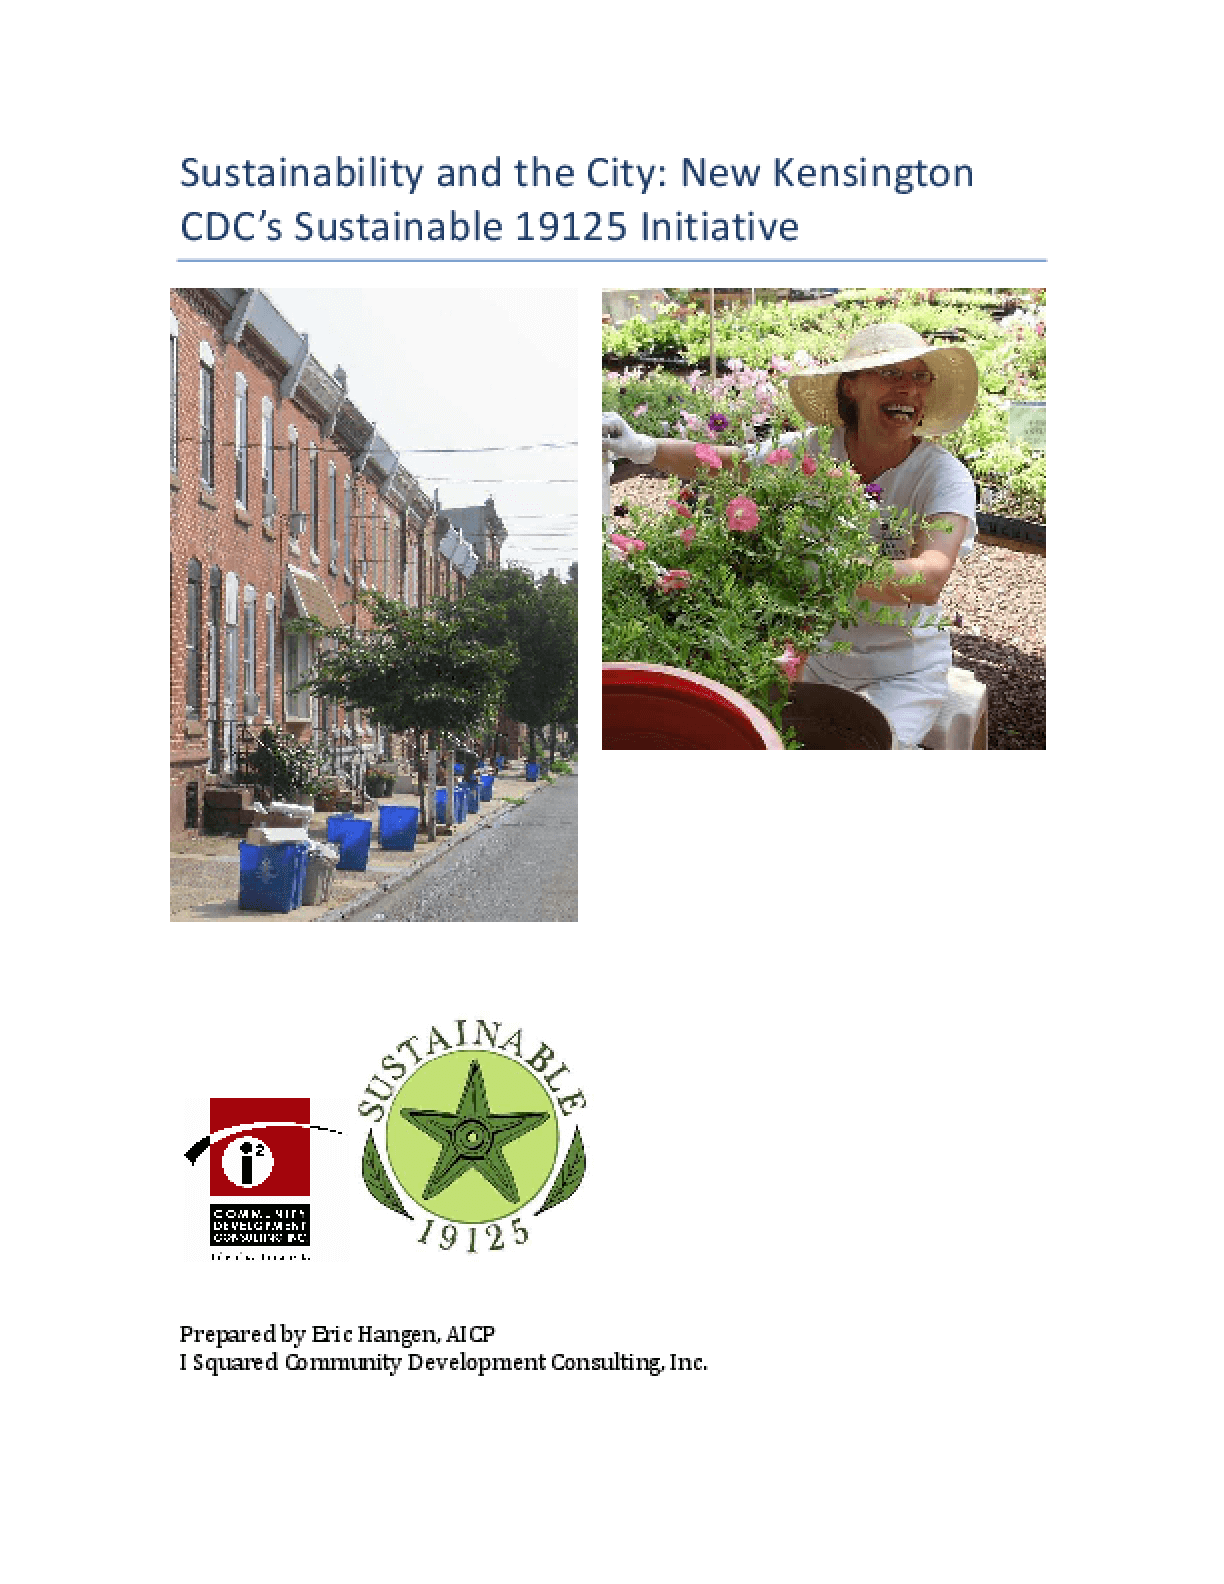 Sustainability and the City: New Kensington CDC's Sustainable 19125 Initiative